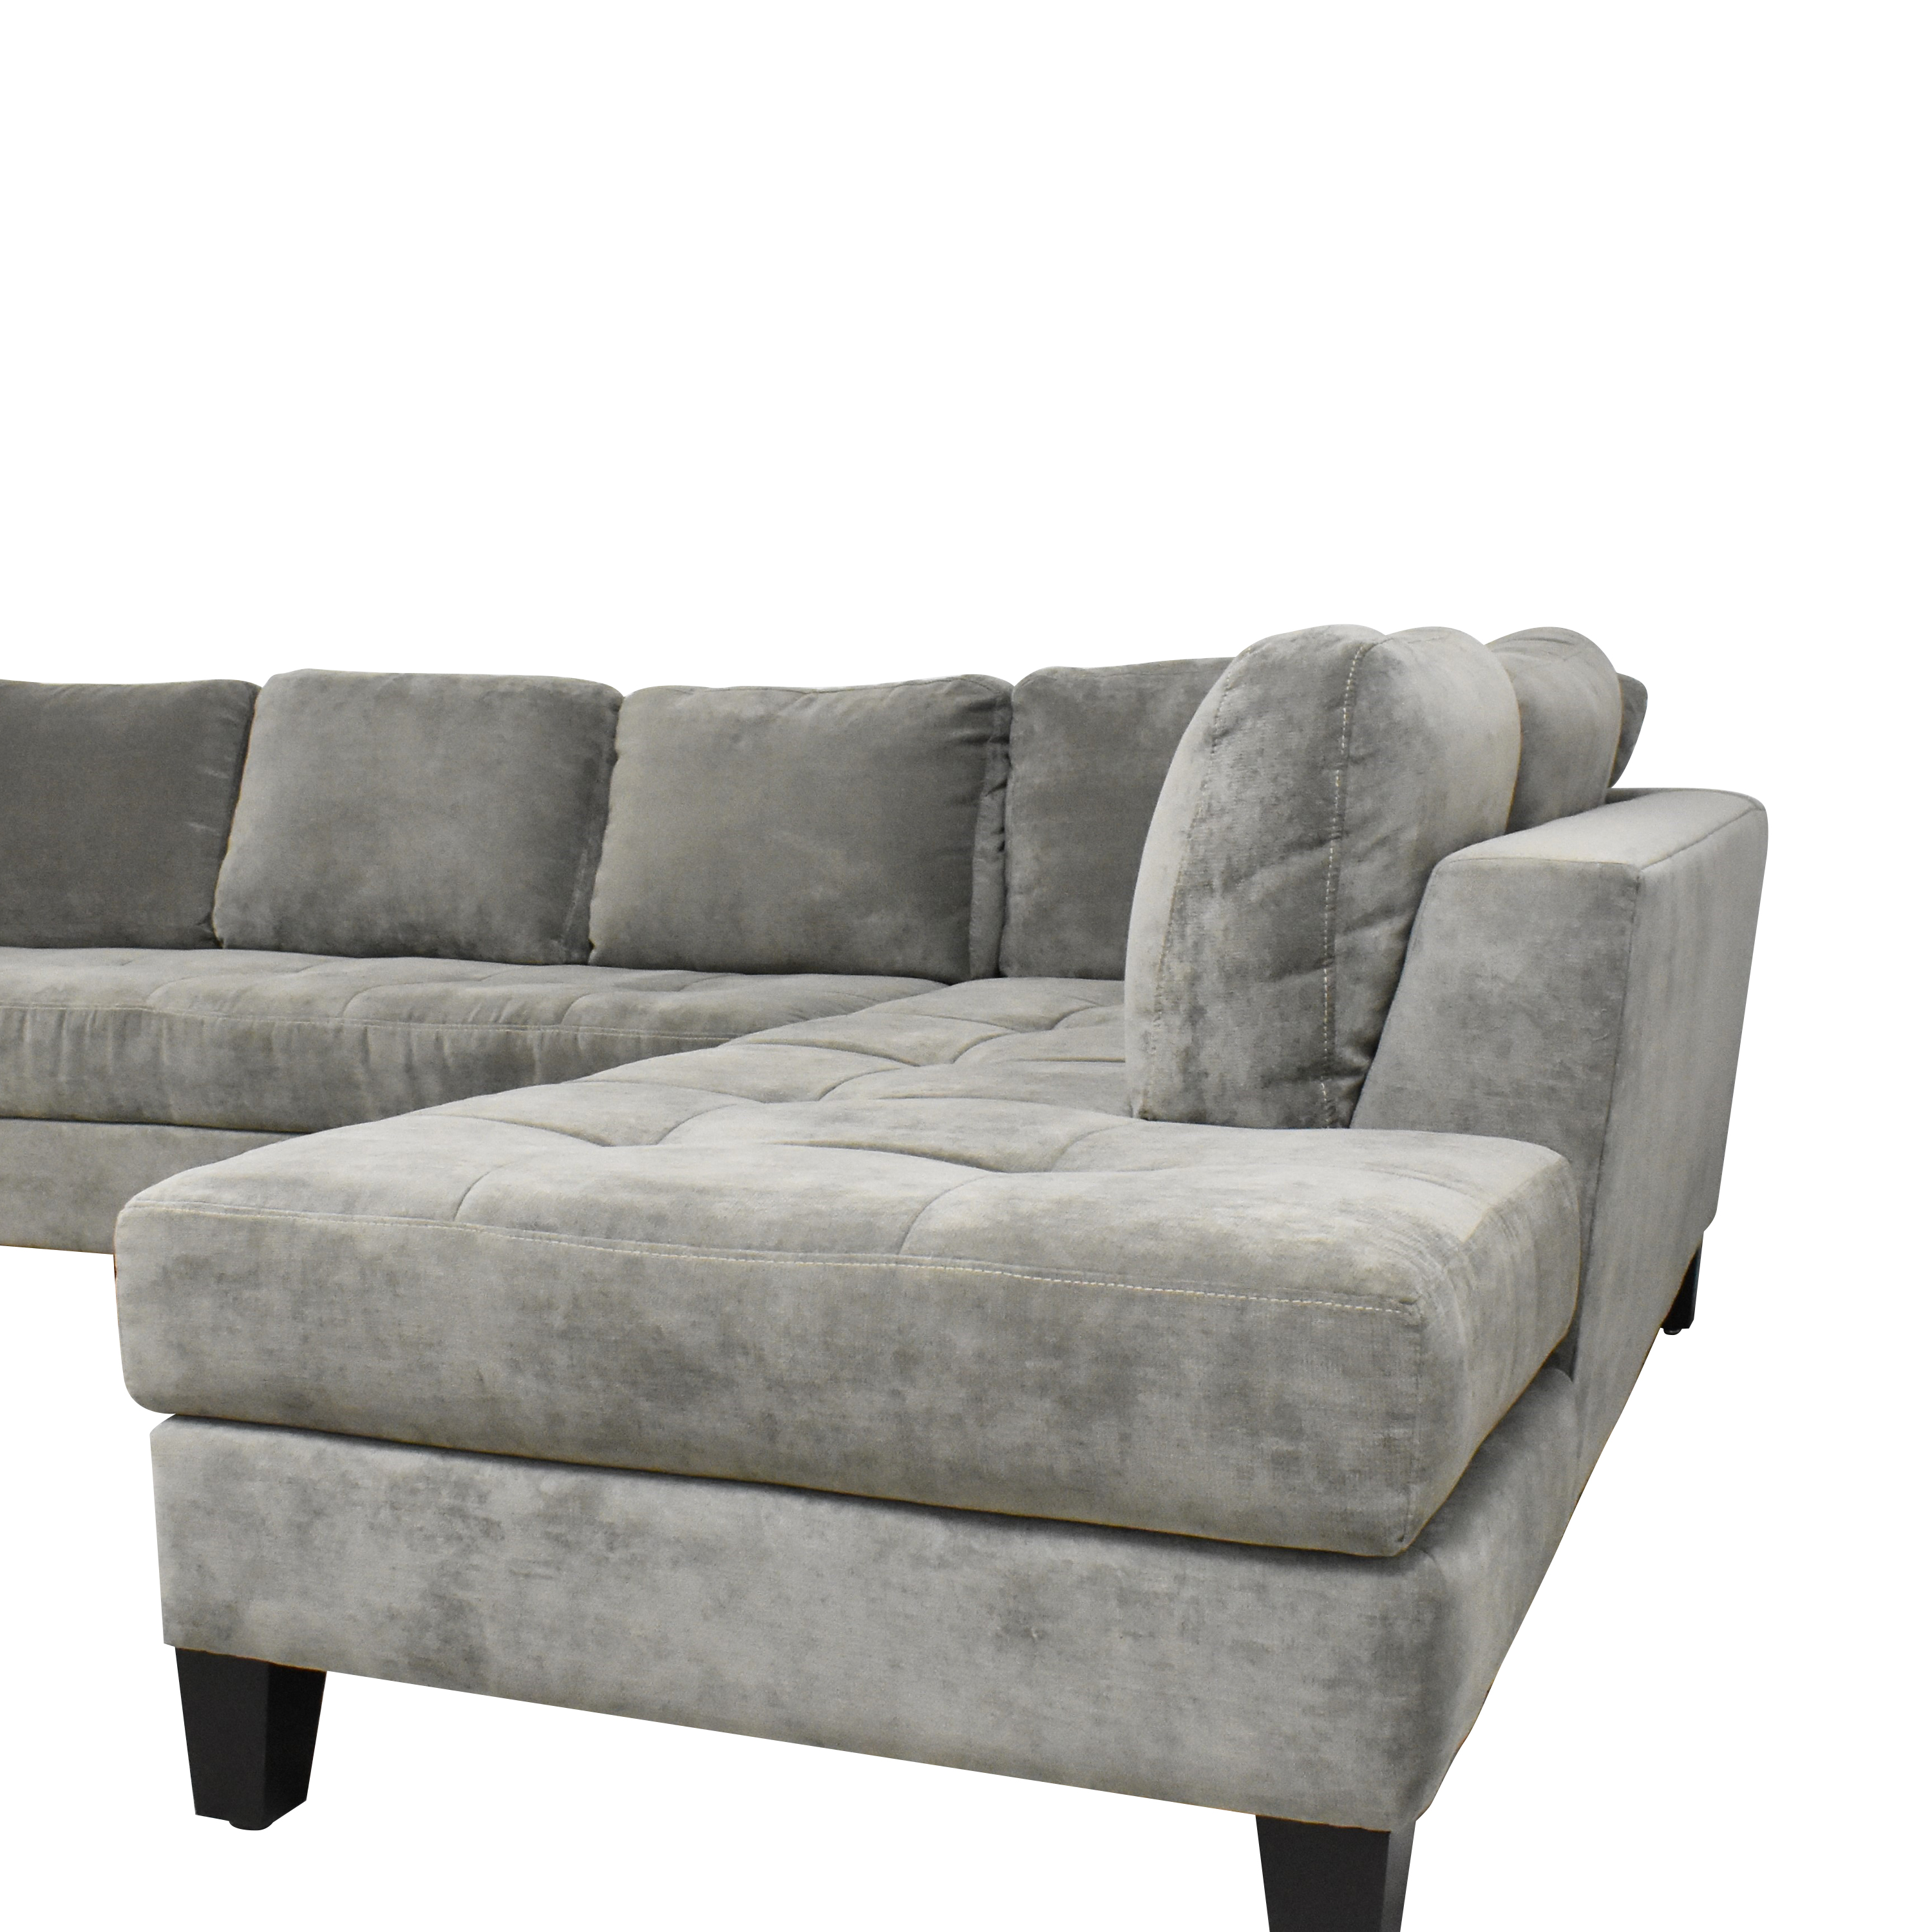 Macy's Tufted Chaise Sectional Sofa / Sofas